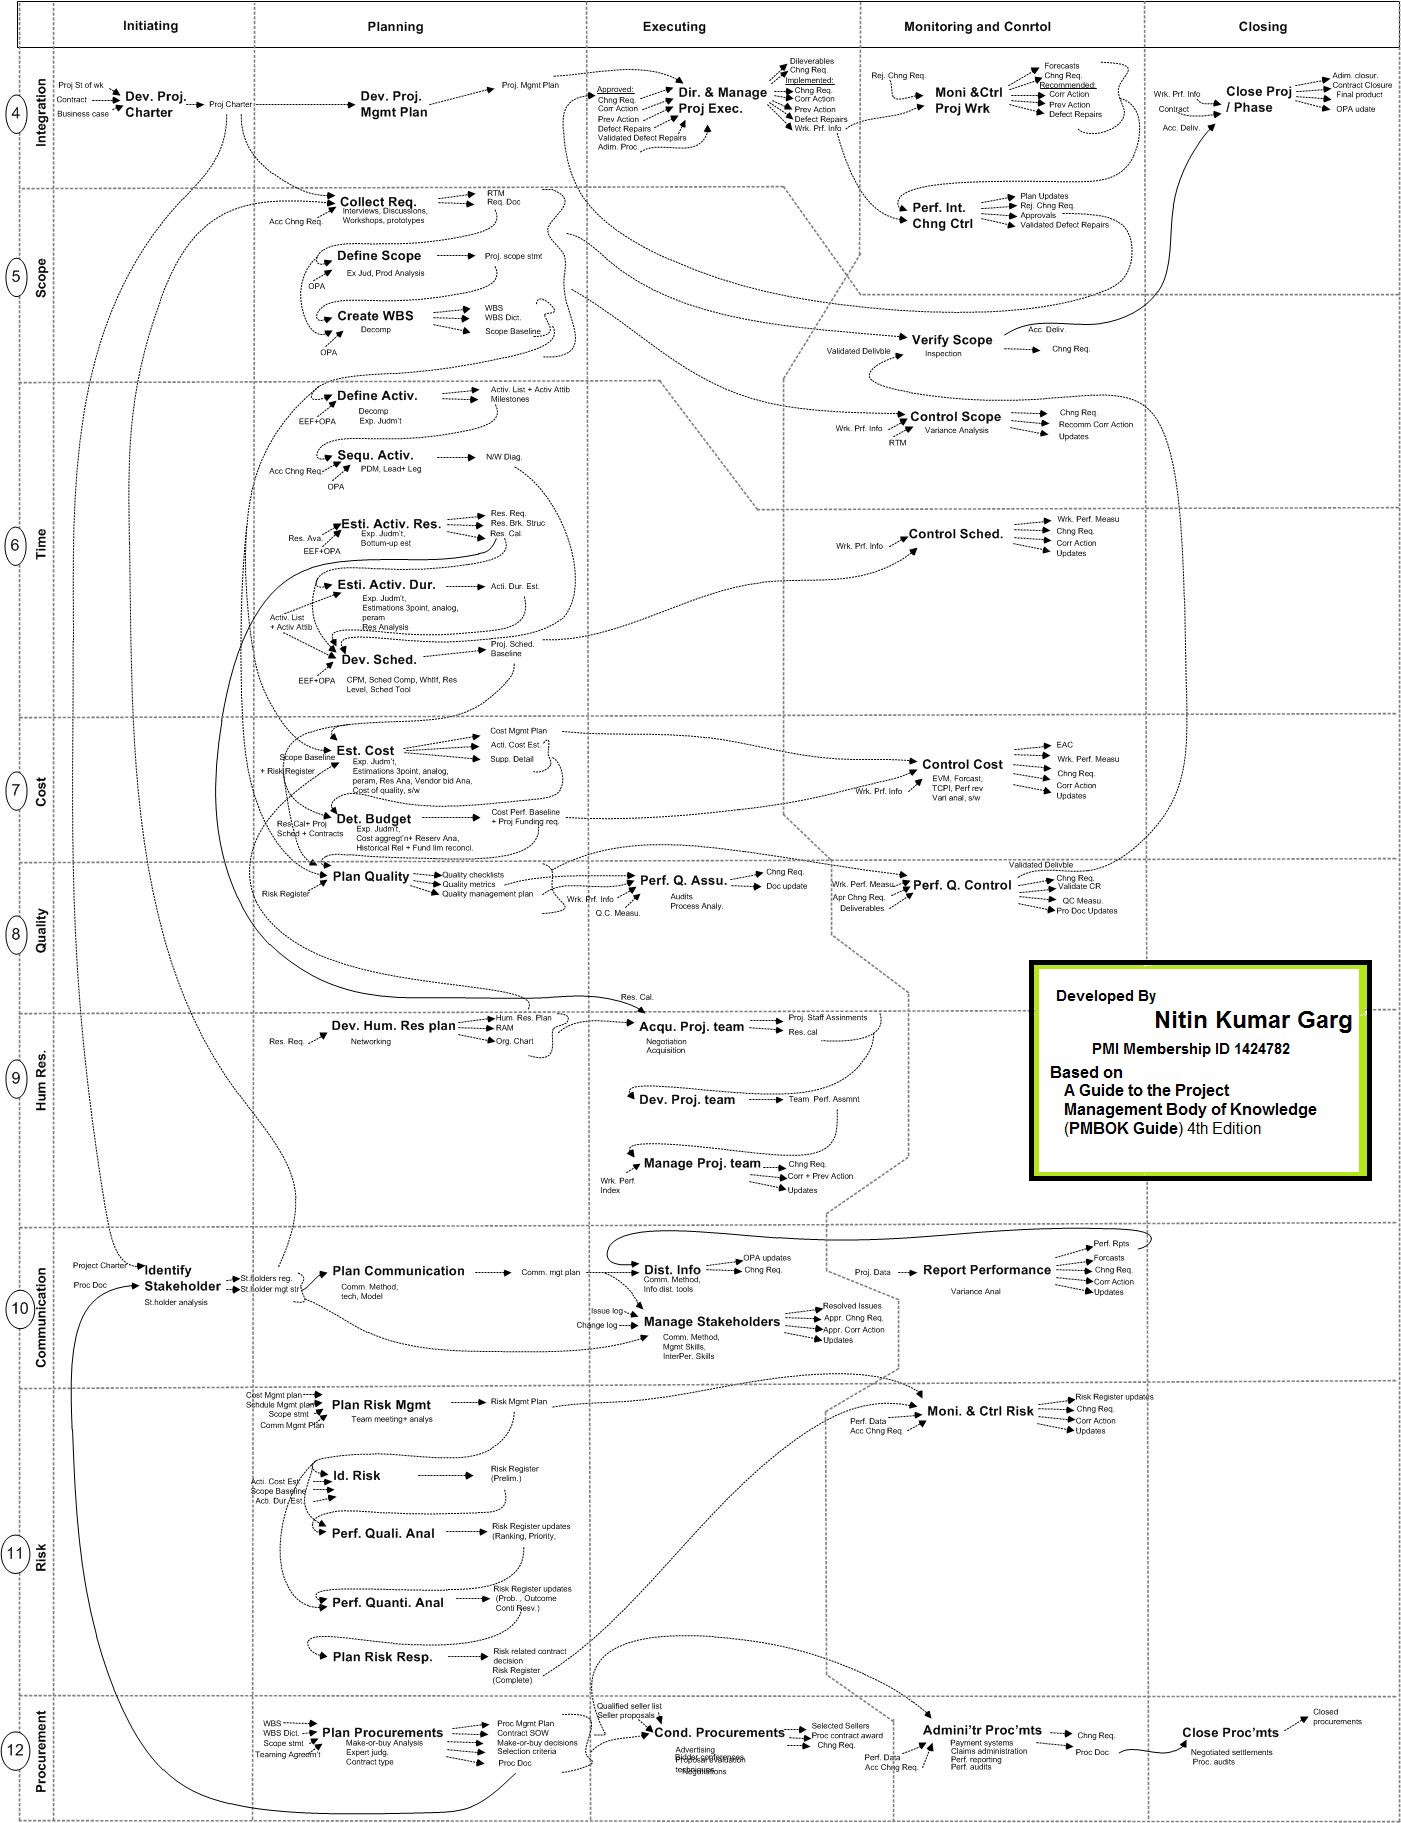 Pmbok Process Flows And Relation Between Knowledge Areas Flow Diagram Levels I Have Developed This In Microsoft Visio My Favorite Designing Tool To Understand One Can Beginner Level Understanding Of